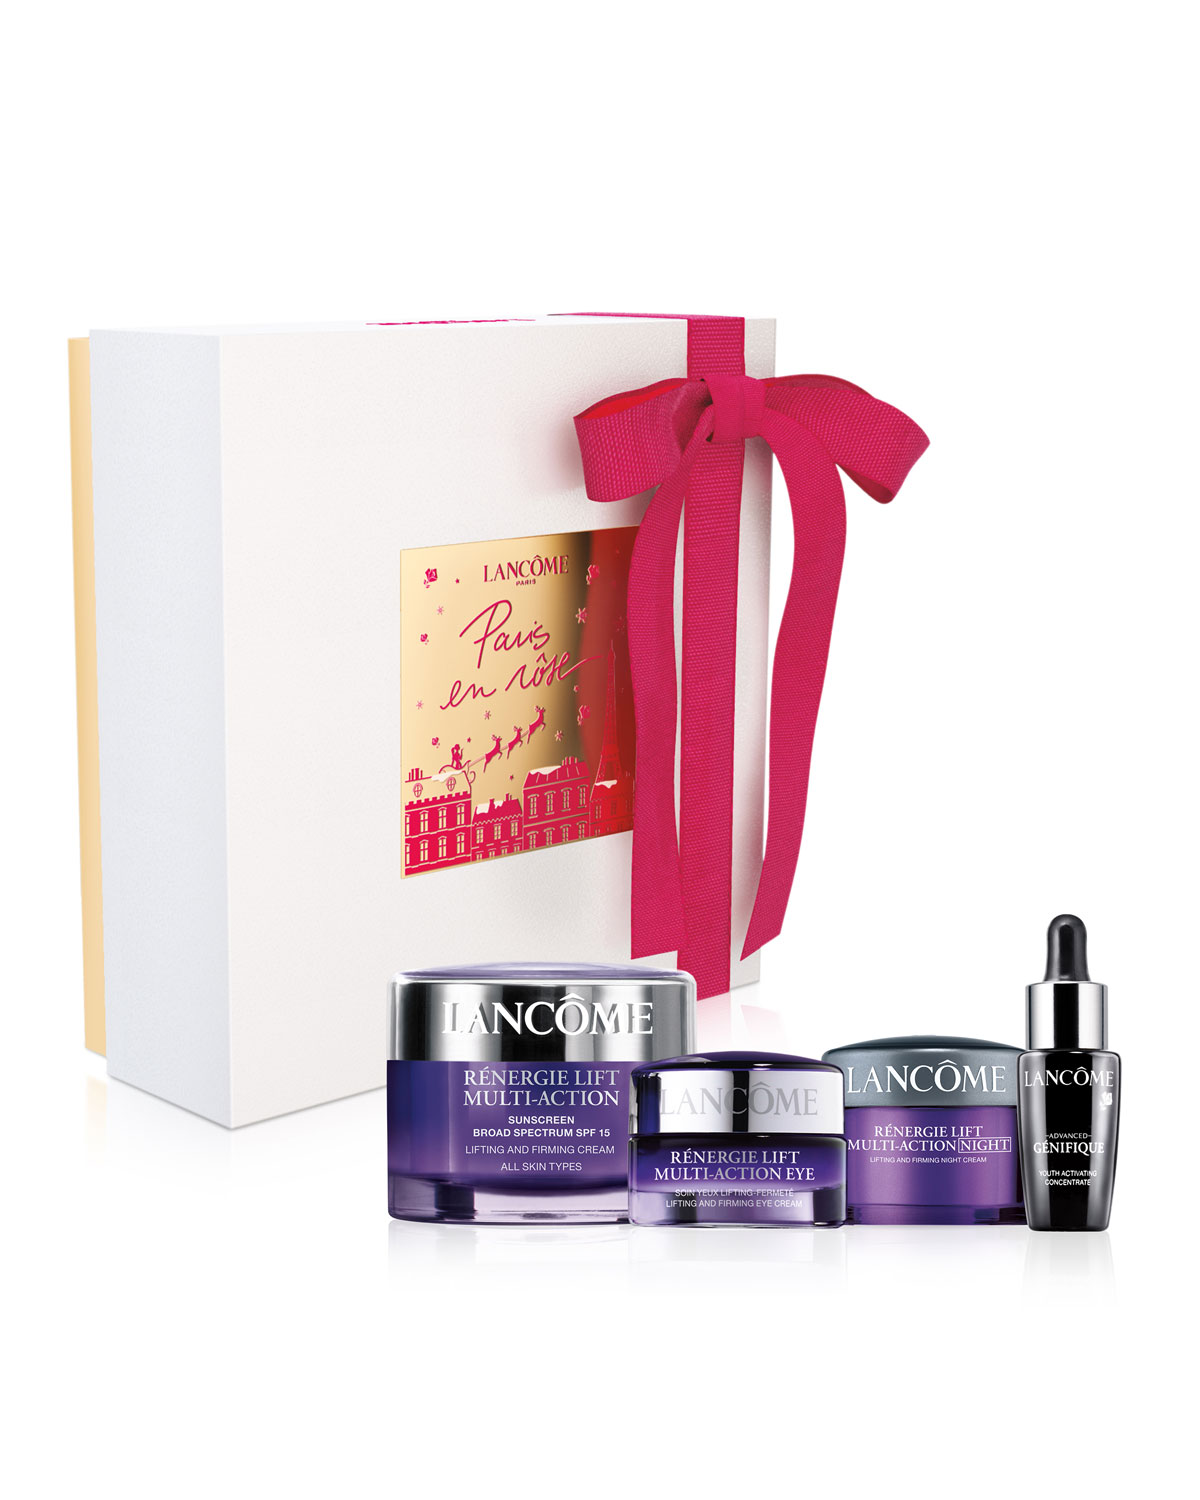 Limited Edition Renergie Lift Multi-Action Holiday Set ($215 Value)